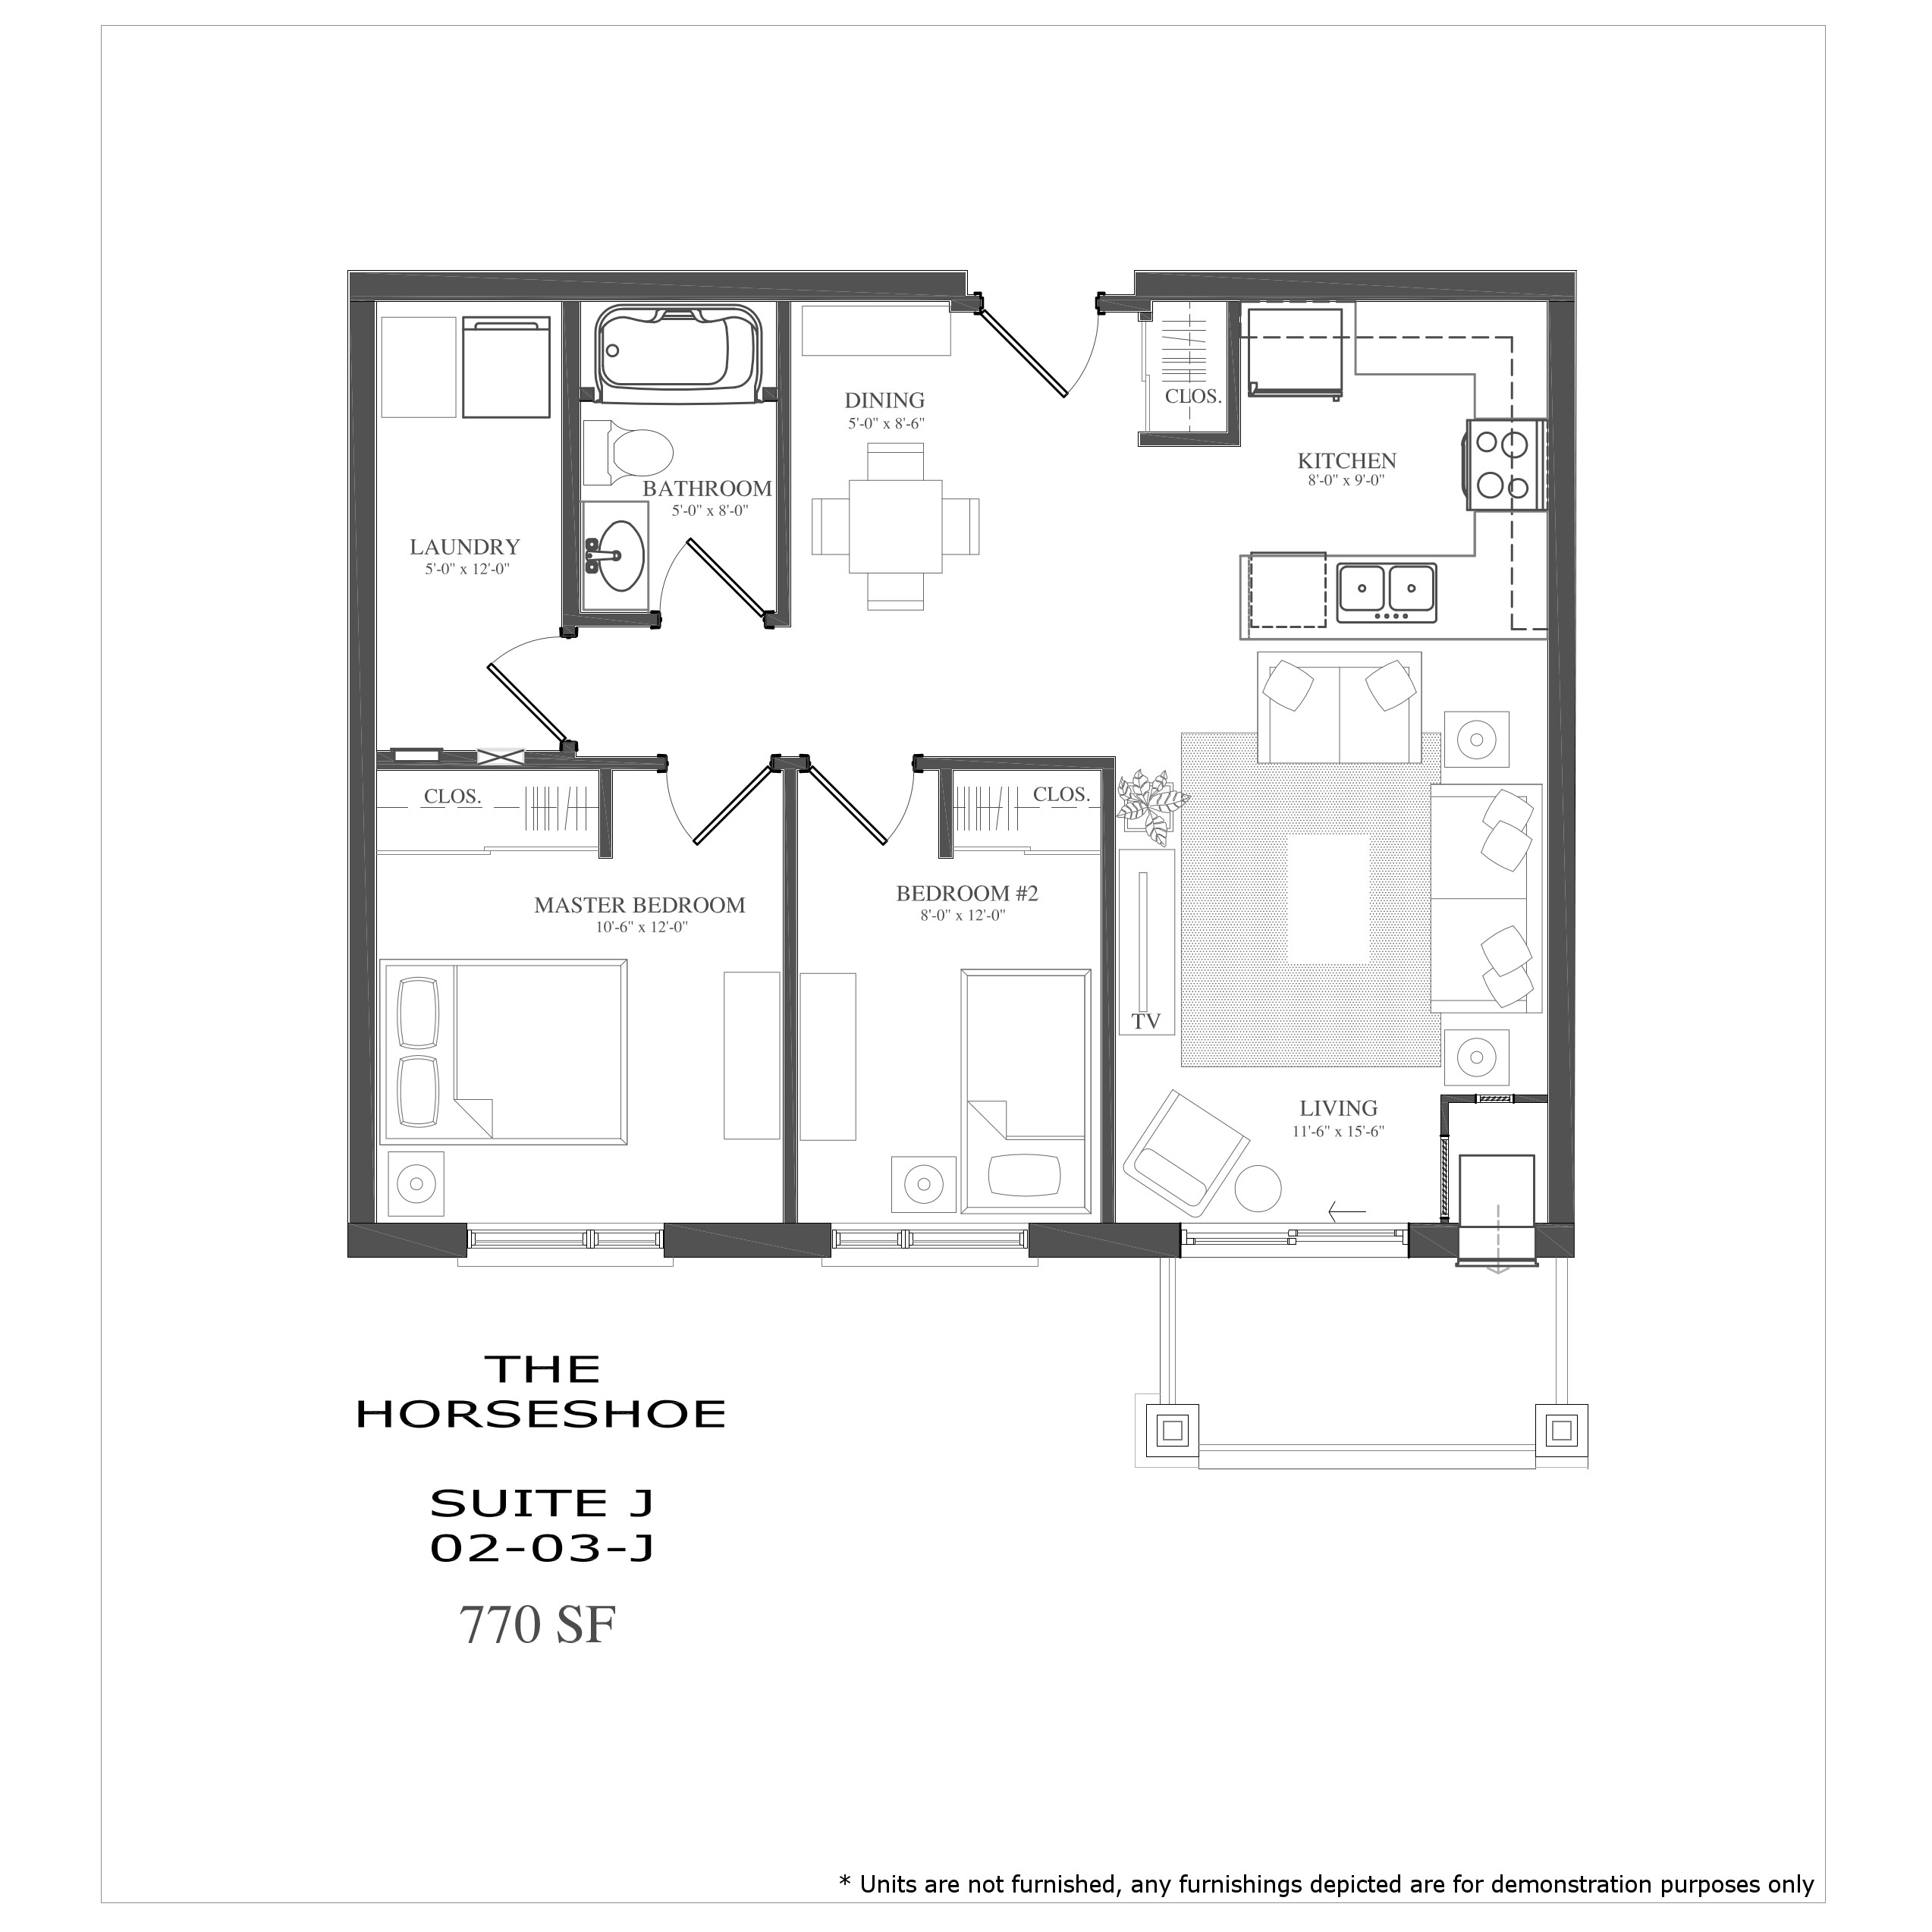 5 x 8 bathroom floor plans - The Horseshoe Preview